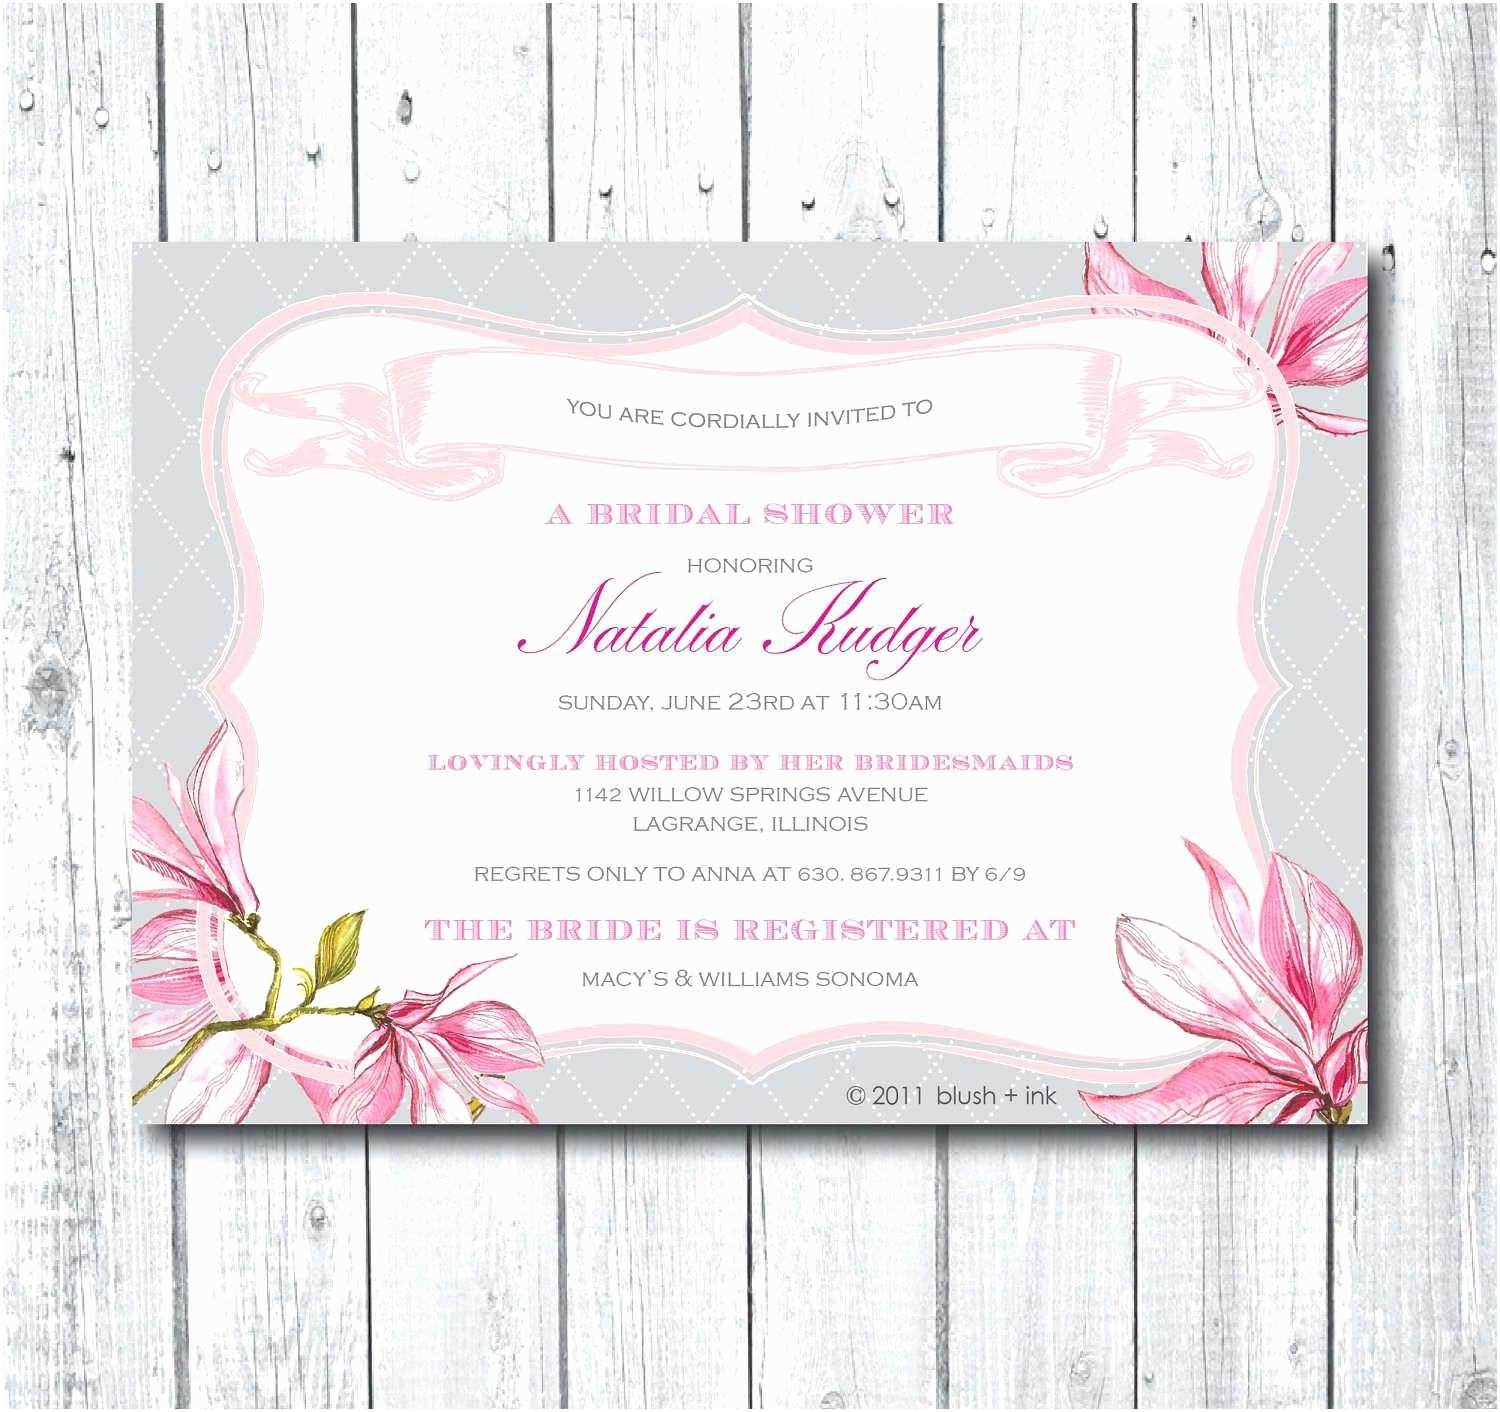 Beach theme Bridal Shower Invitations Beach theme Bridal Shower Invitations Beach themed